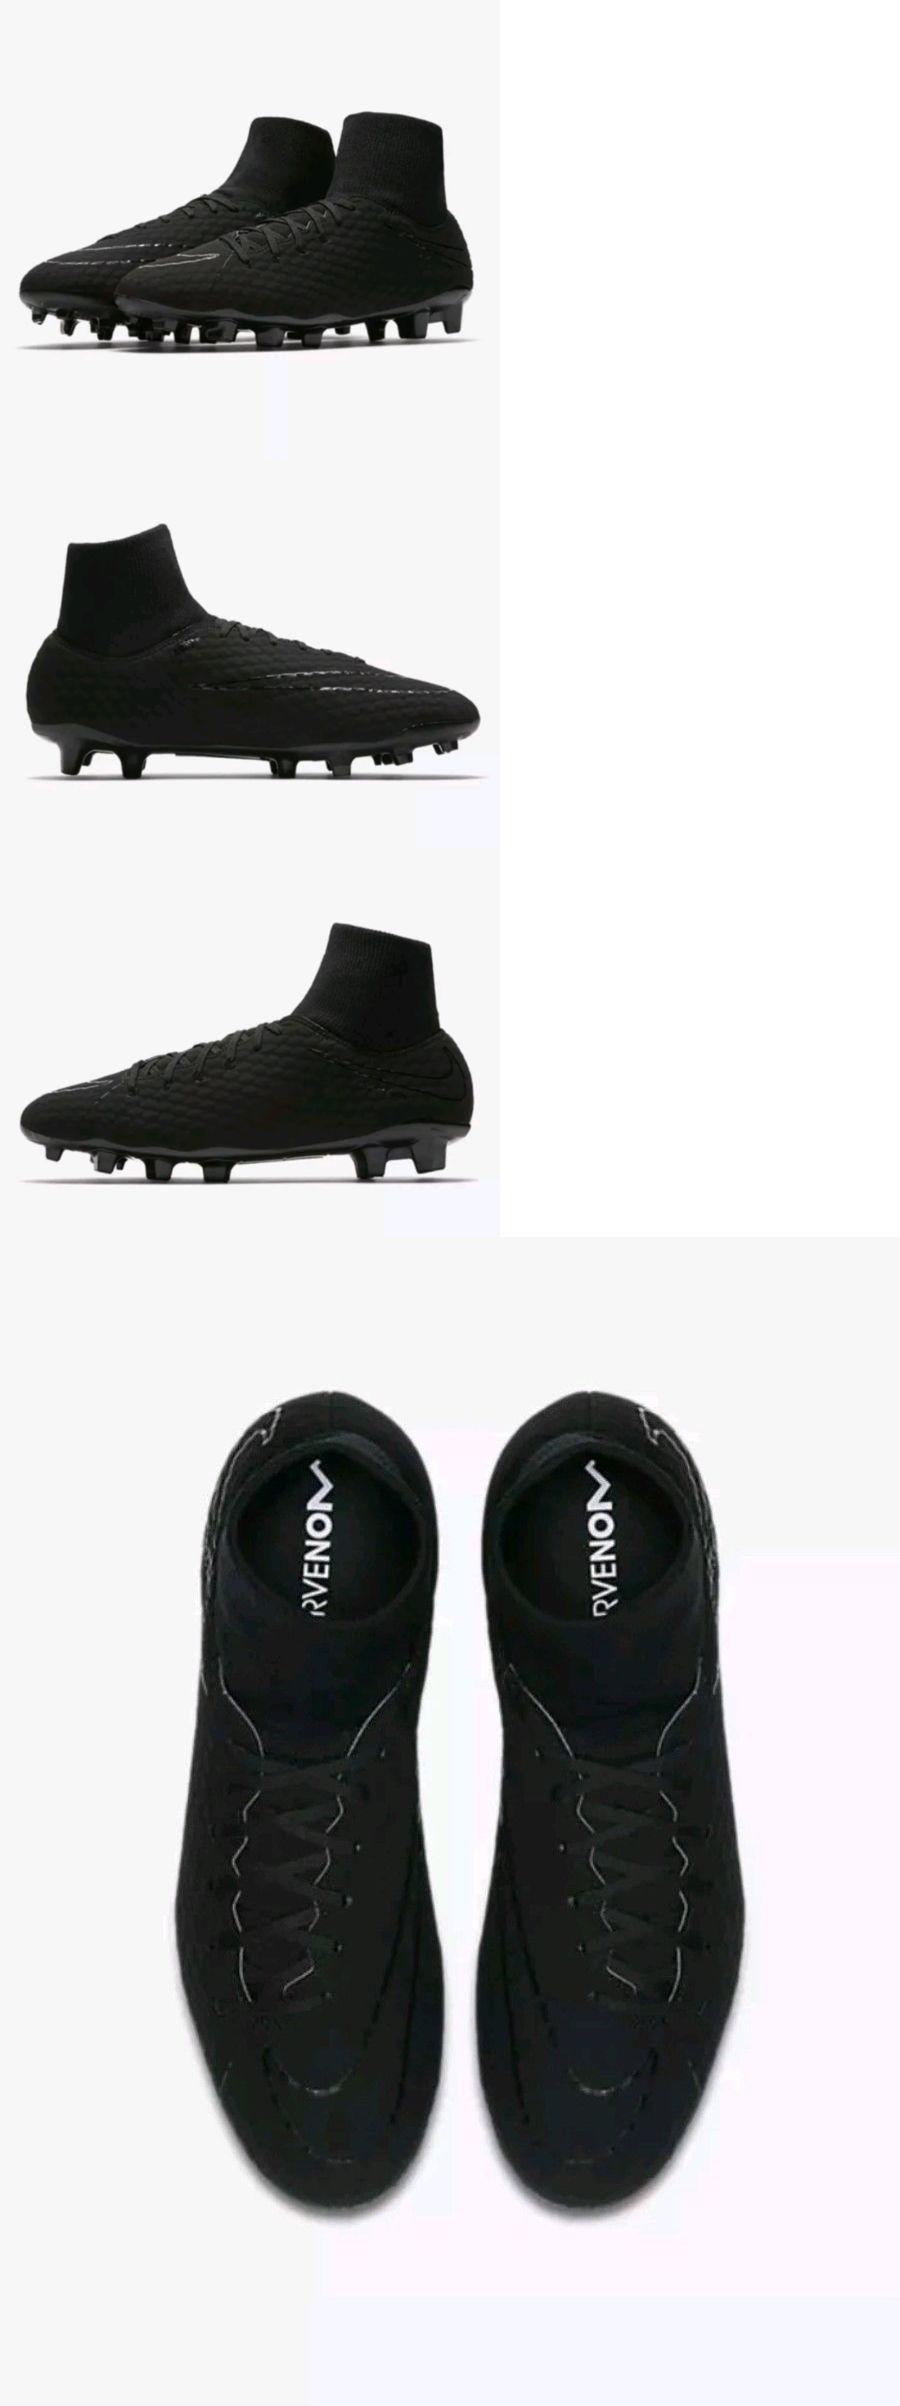 info for 38f54 e8dad Clothing Shoes and Accessories 159178  Nike Hypervenom Phelon 3 Df Fg Soccer  Cleats Size 9.5